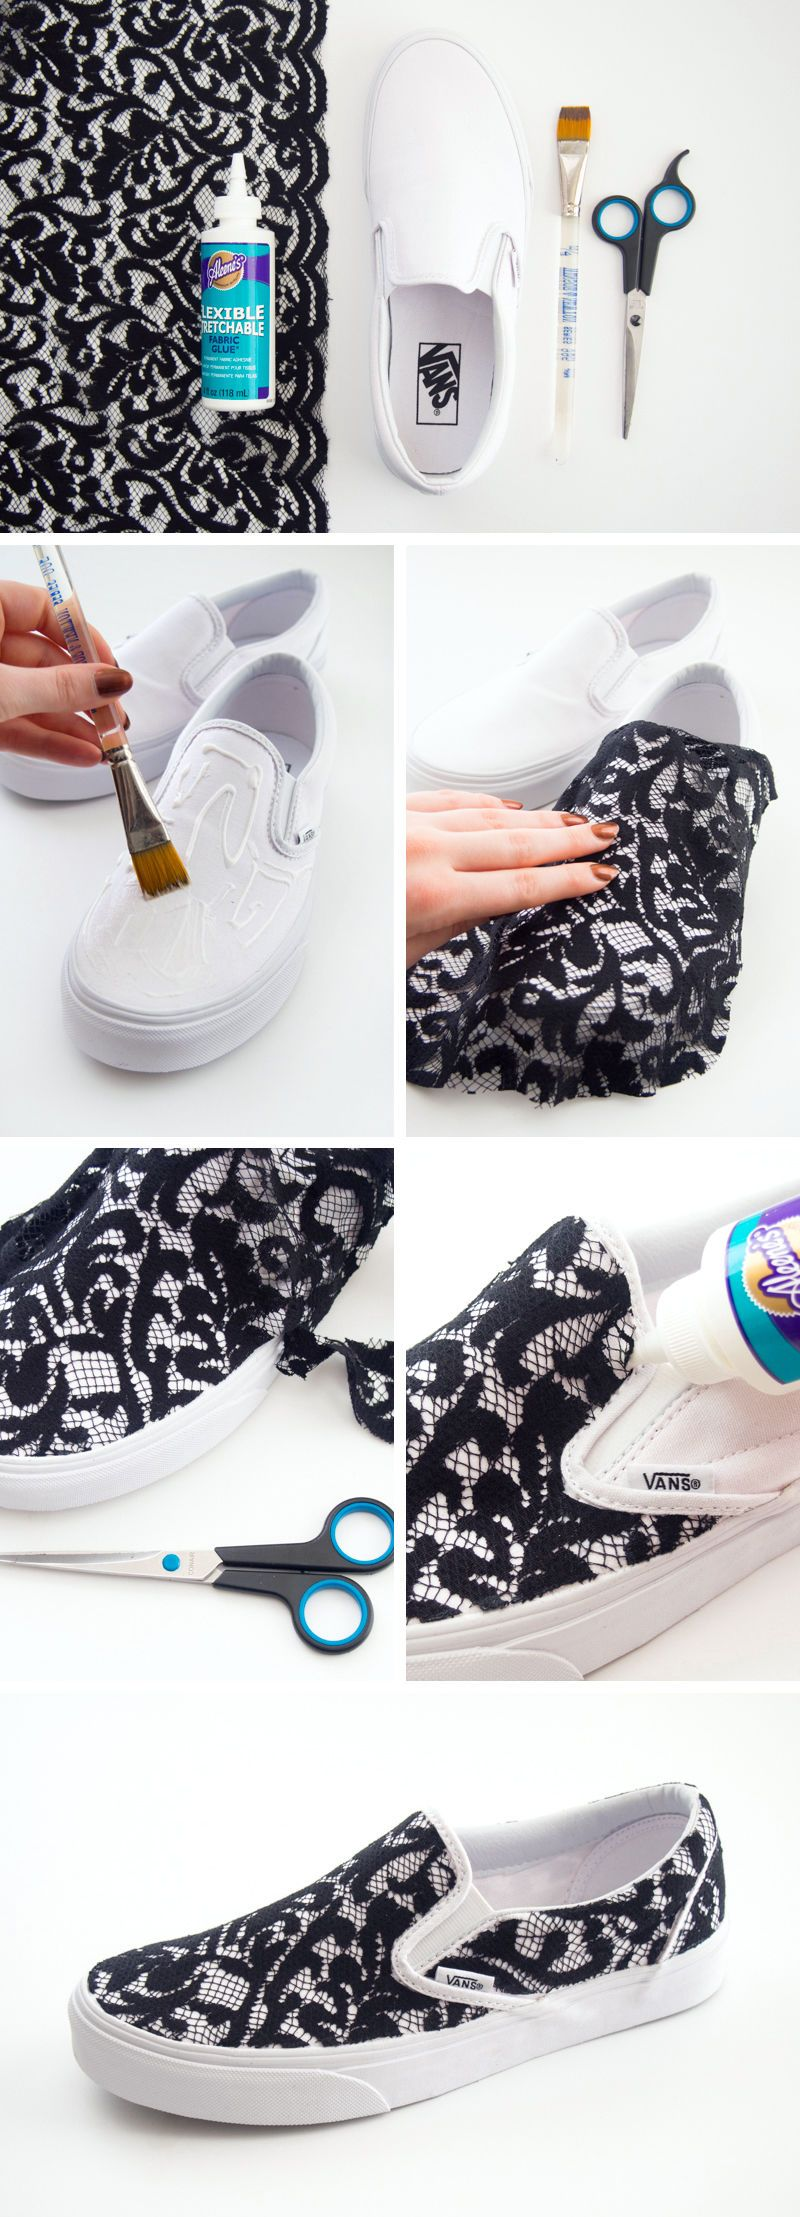 diy lace shoe makeover pictures, photos, and images for facebook